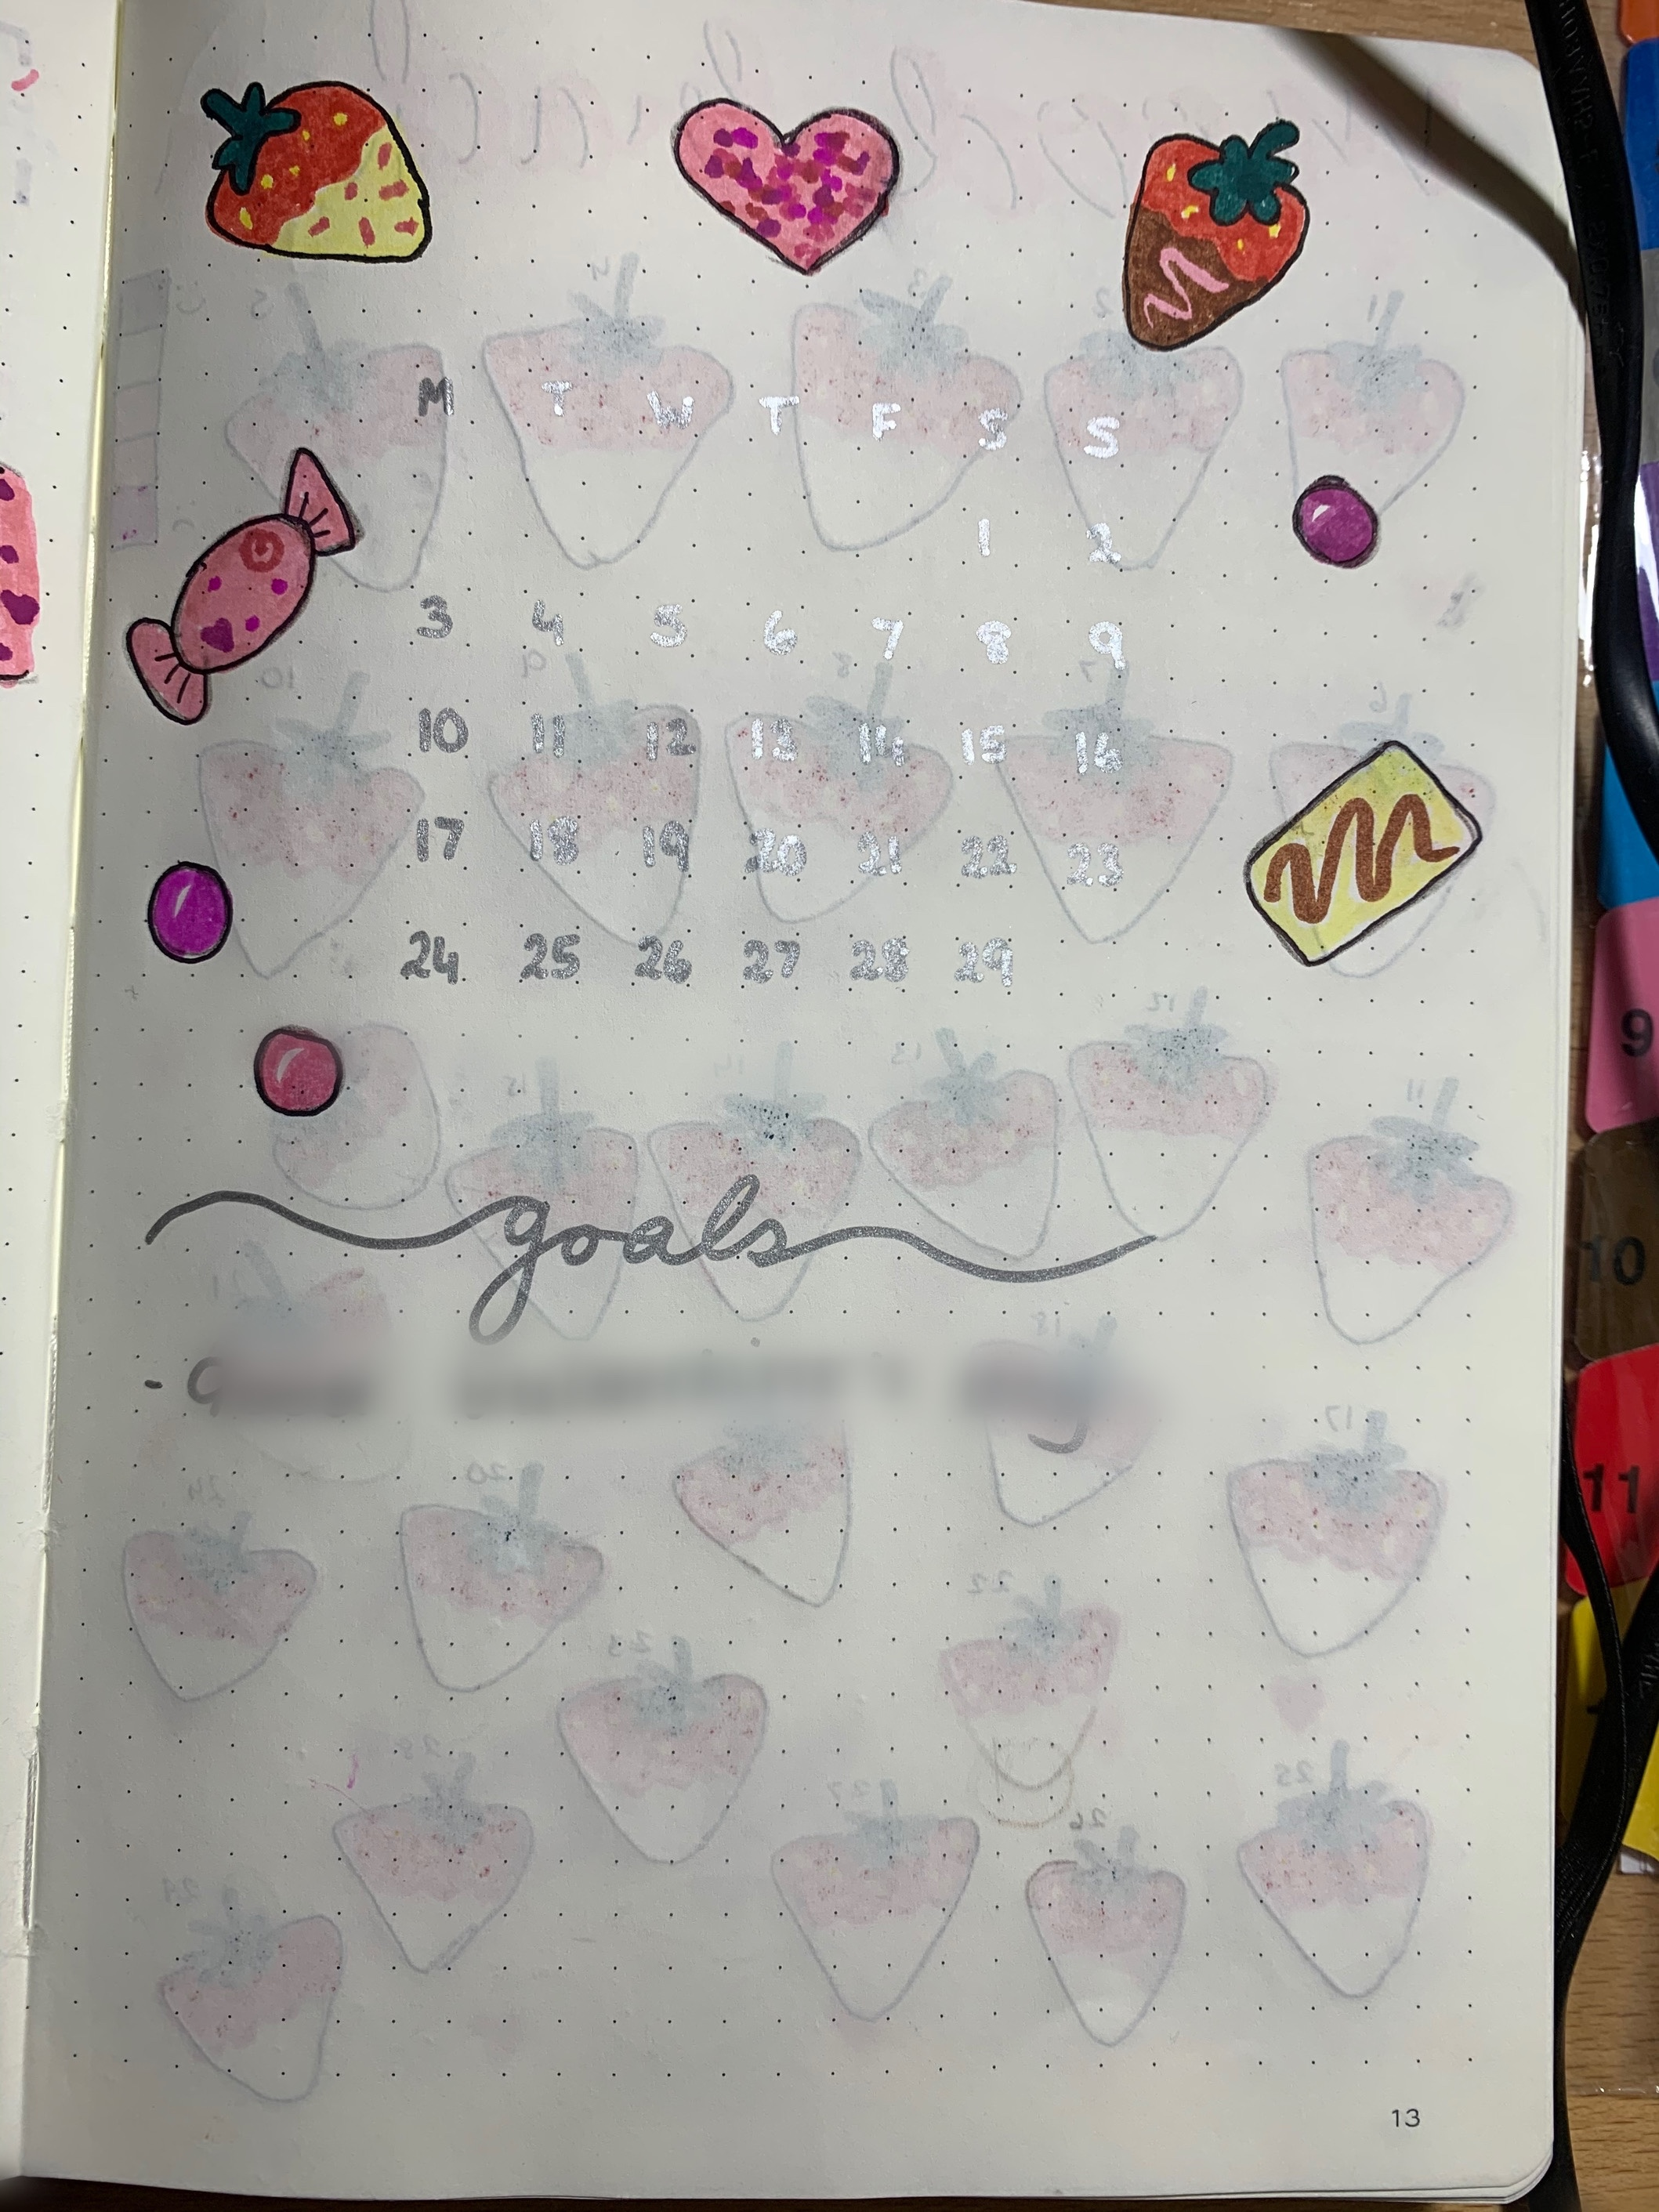 Silver February bullet journal calendar, decorated with chocolate strawberries